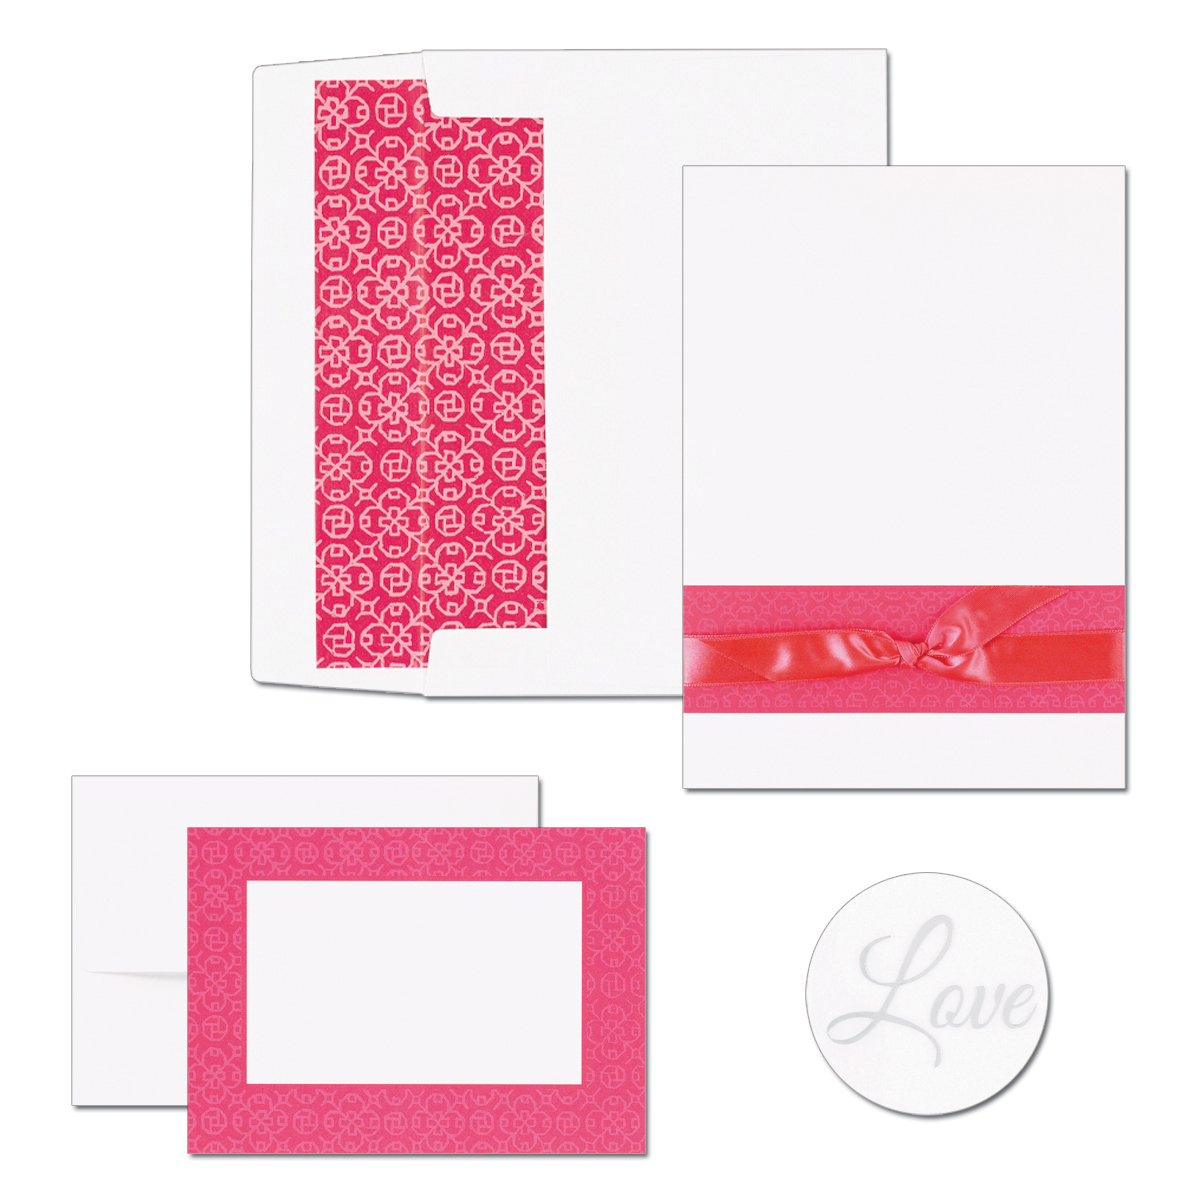 "Fuchsia Band Invitations and Note Card Kit  - GREAT DEAL! This product is great for Weddings and other special events.   Fuchsia Band design with bow includes  50 invitations, 50 lined envelopes, 50 note cards and 50 note card envelopes plus 50 bonus seals size of note card is 5.5"" x 7.75"" note card  4.875"" x 3.375"" 65lb. card stock. If you are ordering personalized, we will only print ""Thank You on the Note cards in your personalized font. we do not send a proof of the note card. If you do Not need these personalized please make a note in the comments section."